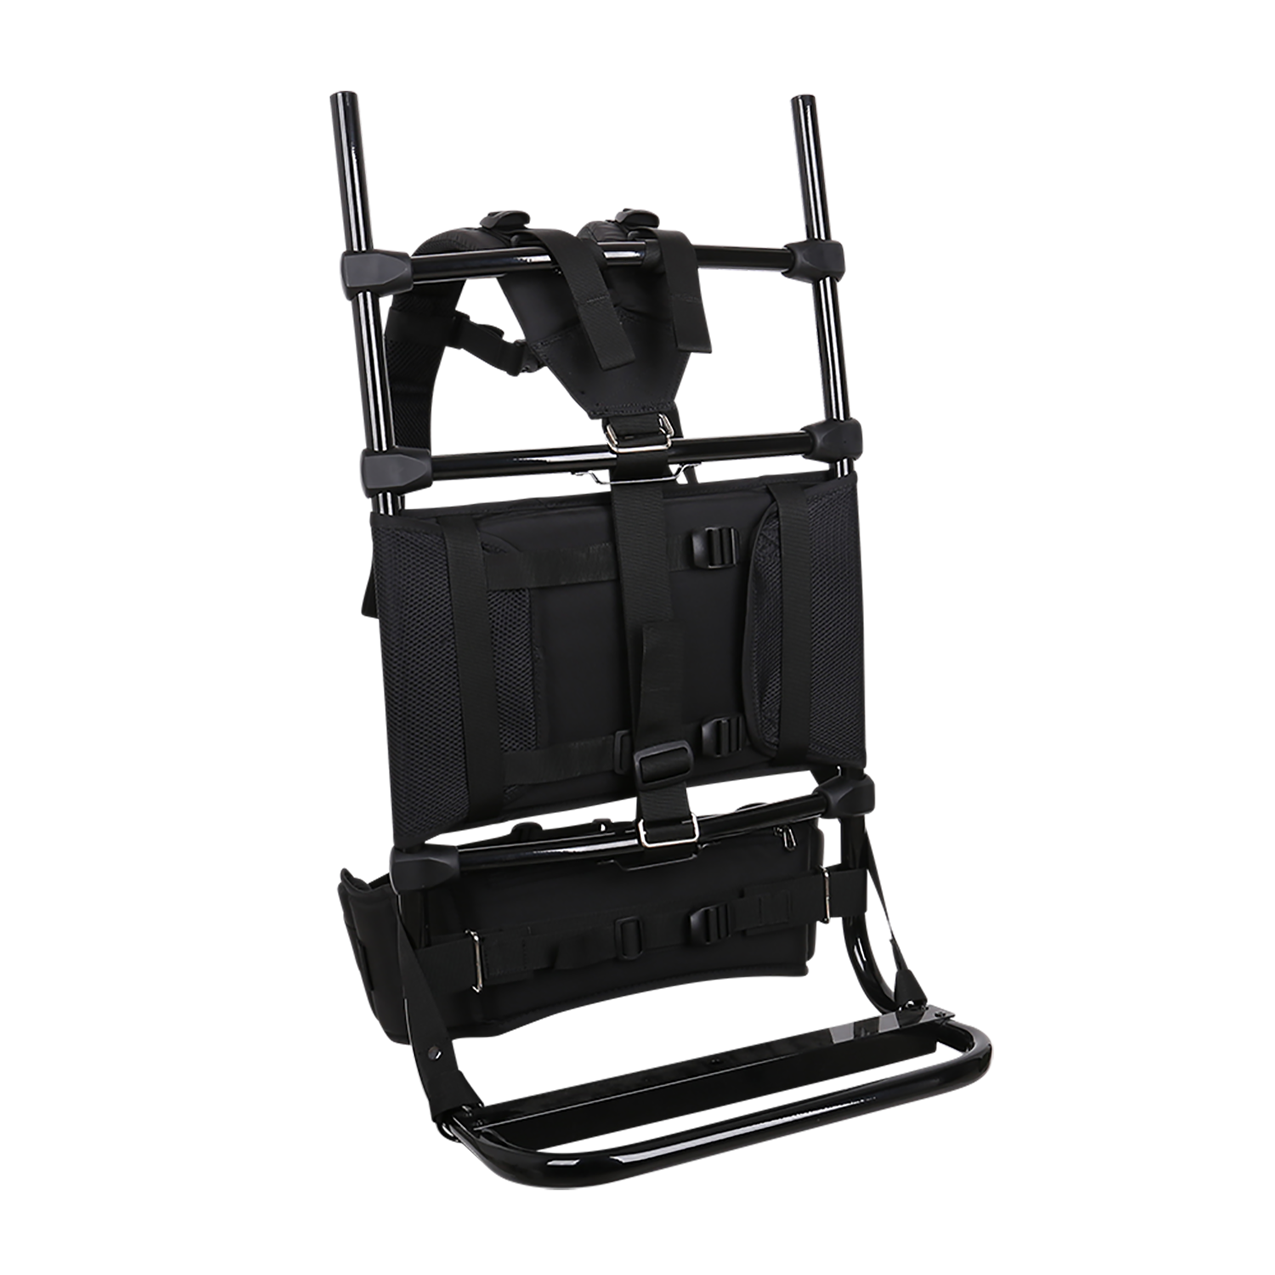 Backpack carrying system